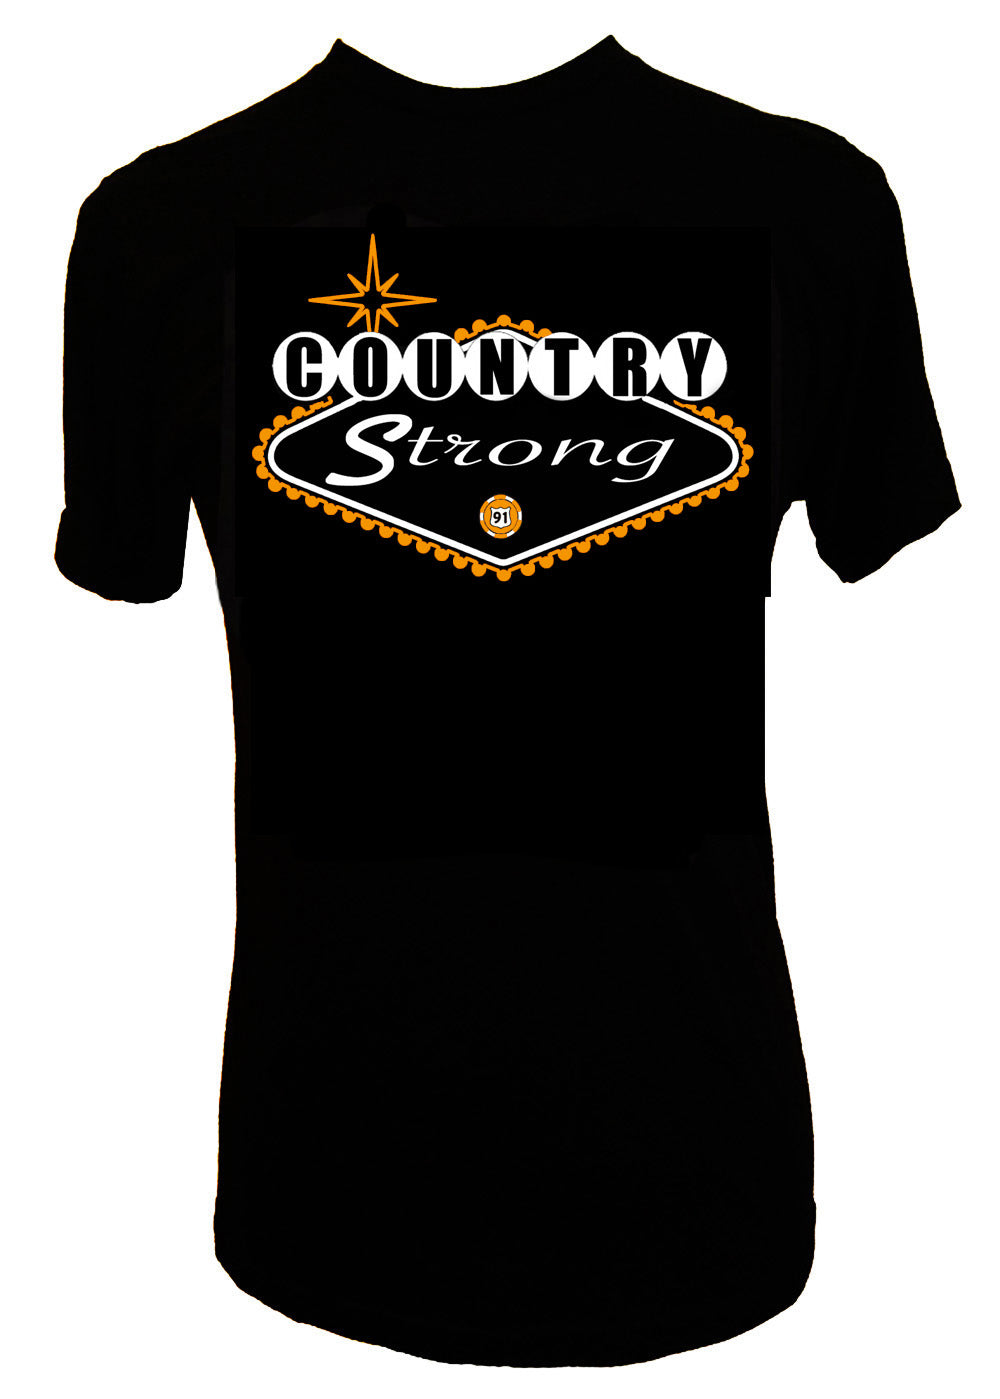 COUNTRY STRONG LAS VEGAS ROUTE 91 T SHIRT - Trailsclothing.com